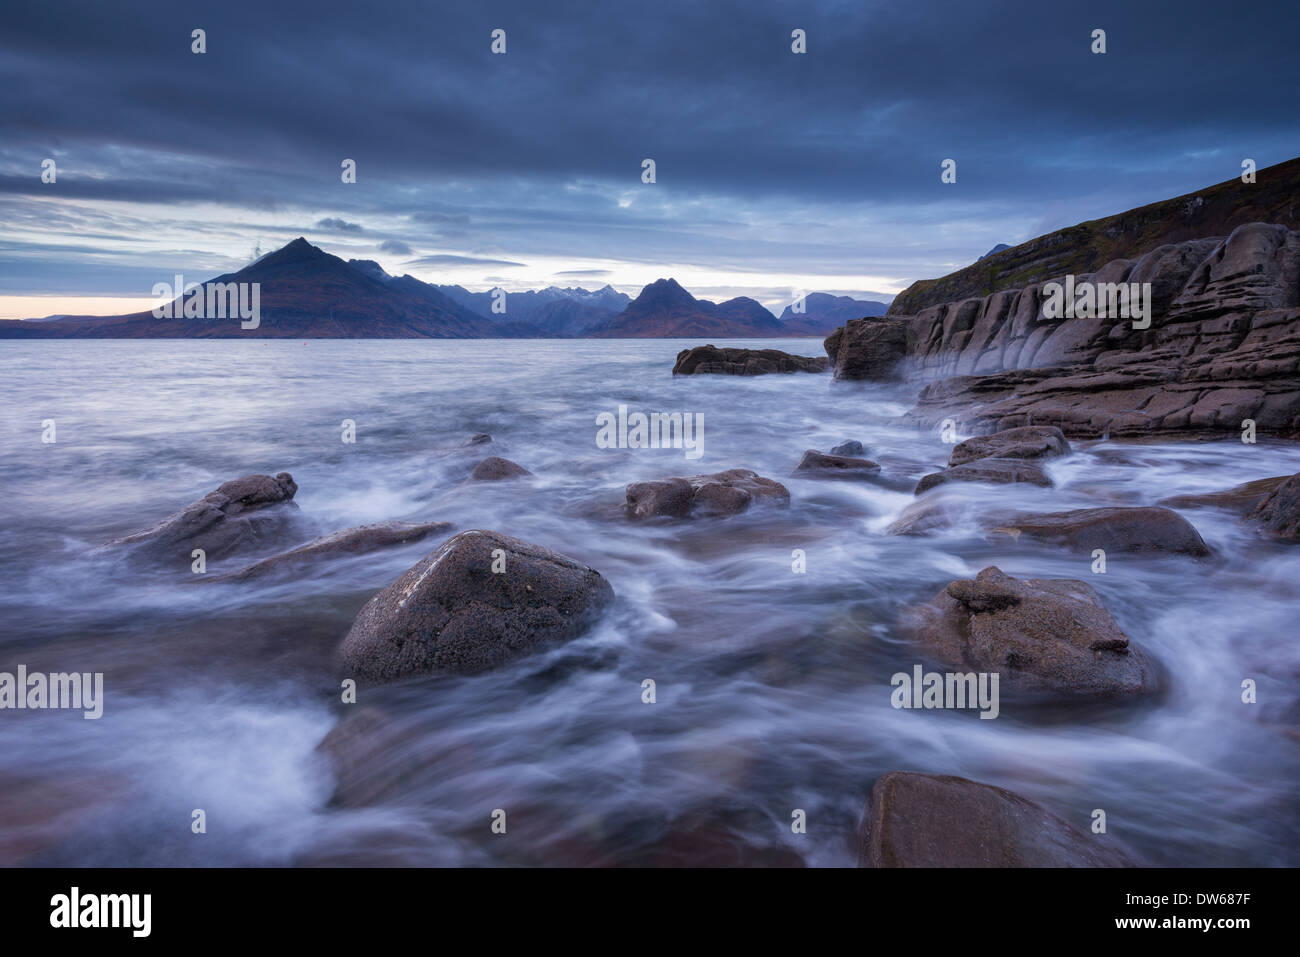 Waves rush around the rocky shores of Elgol, Isle of Skye, Scotland. Winter (December) 2013. - Stock Image